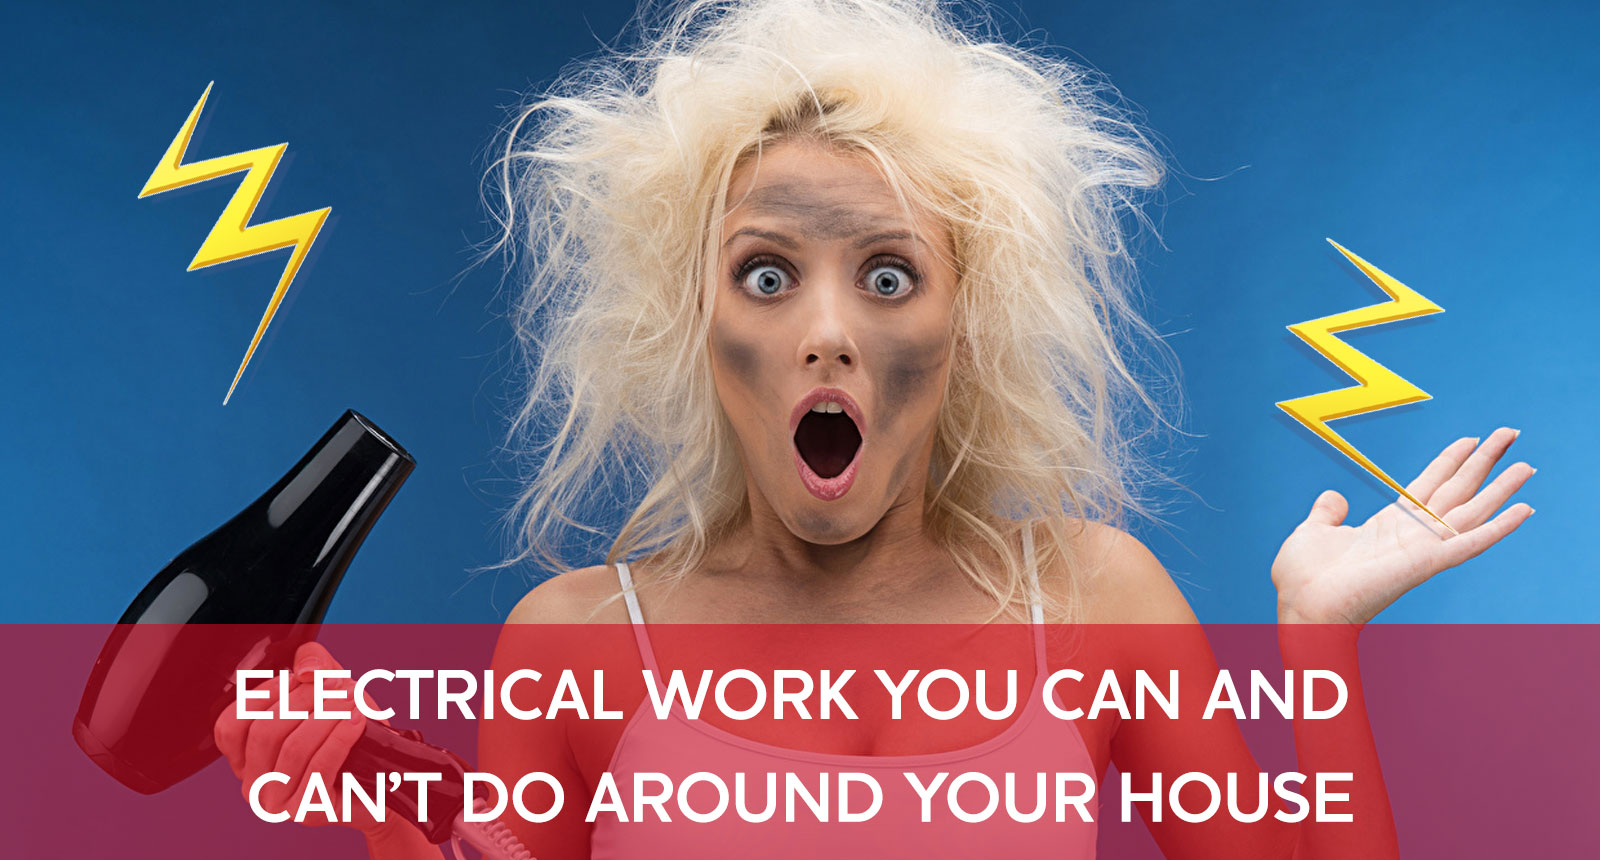 ELECTRICAL WORK YOU CAN AND CAN'T DO AROUND YOUR HOUSE